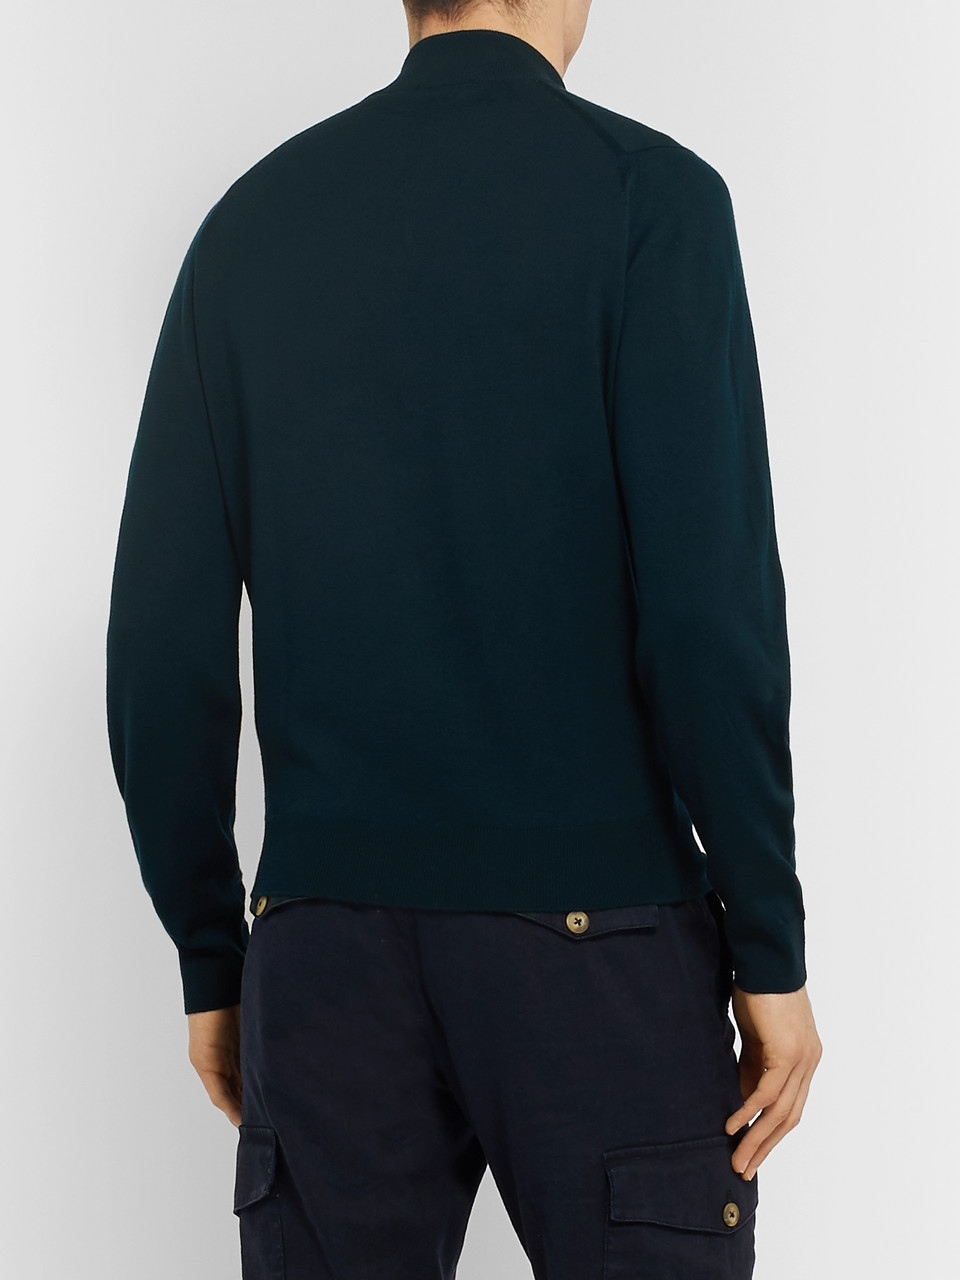 John Smedley Tapton Slim-Fit Merino Wool Half-Zip Sweater